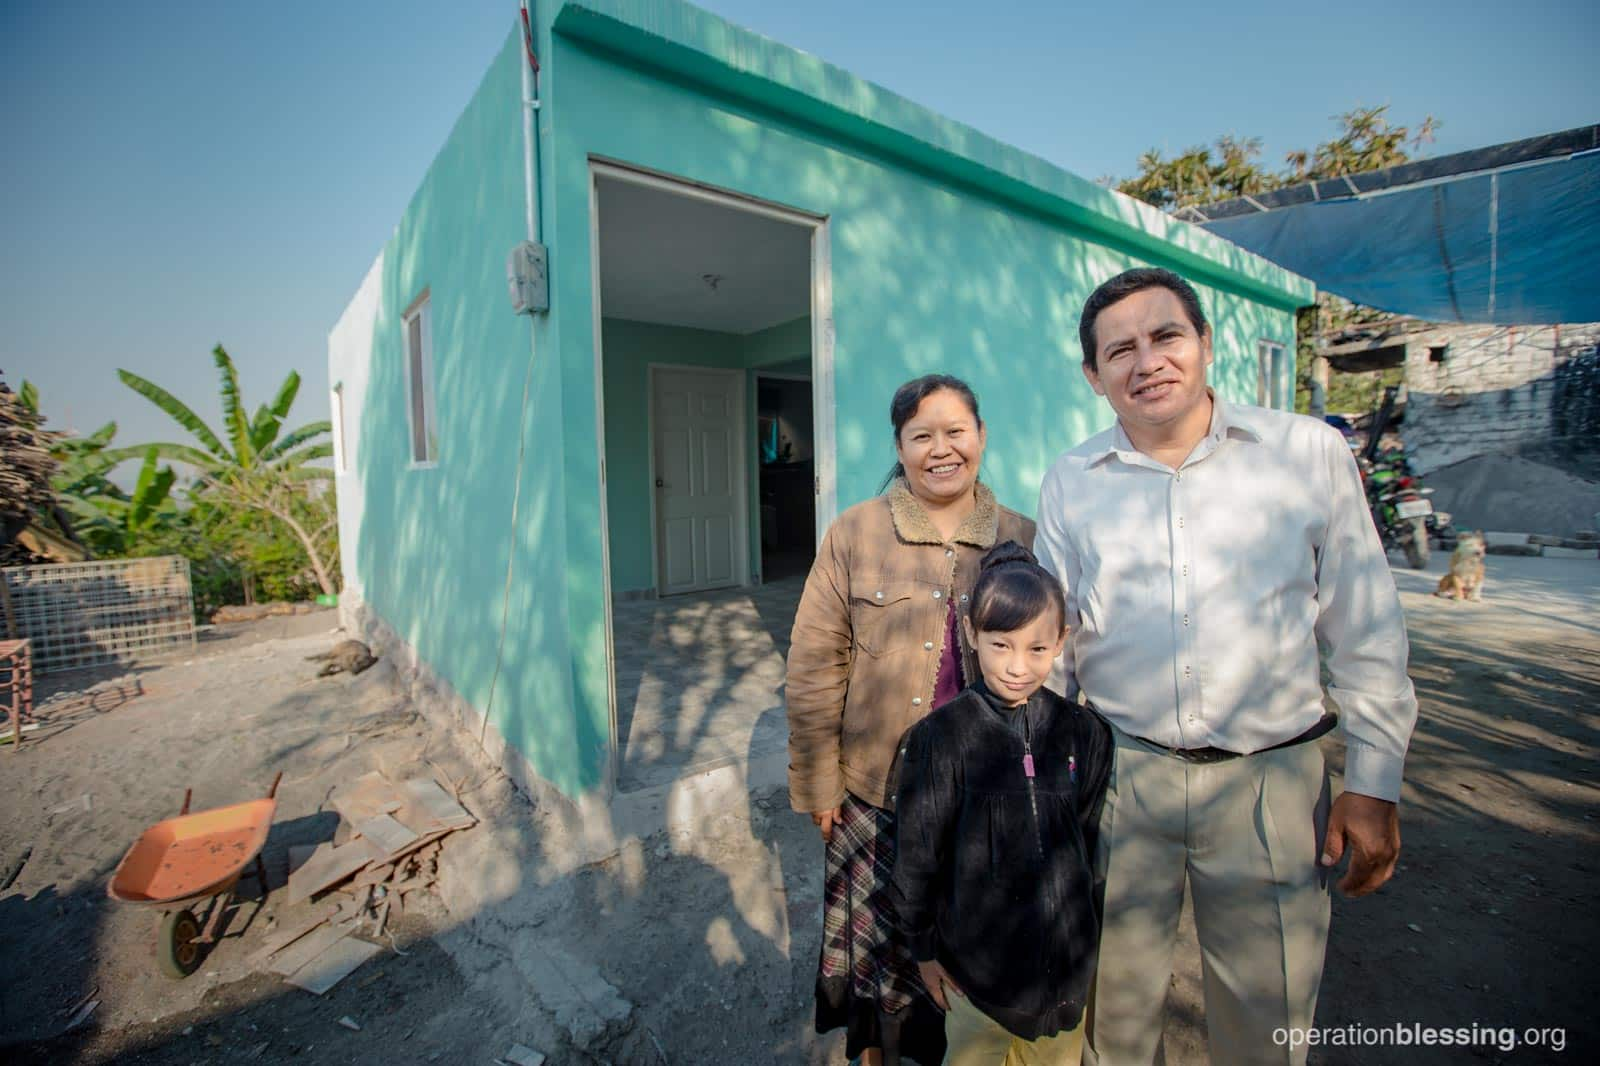 Pastor Rafael and his family smile as they stand in front of their newly rebuilt home.